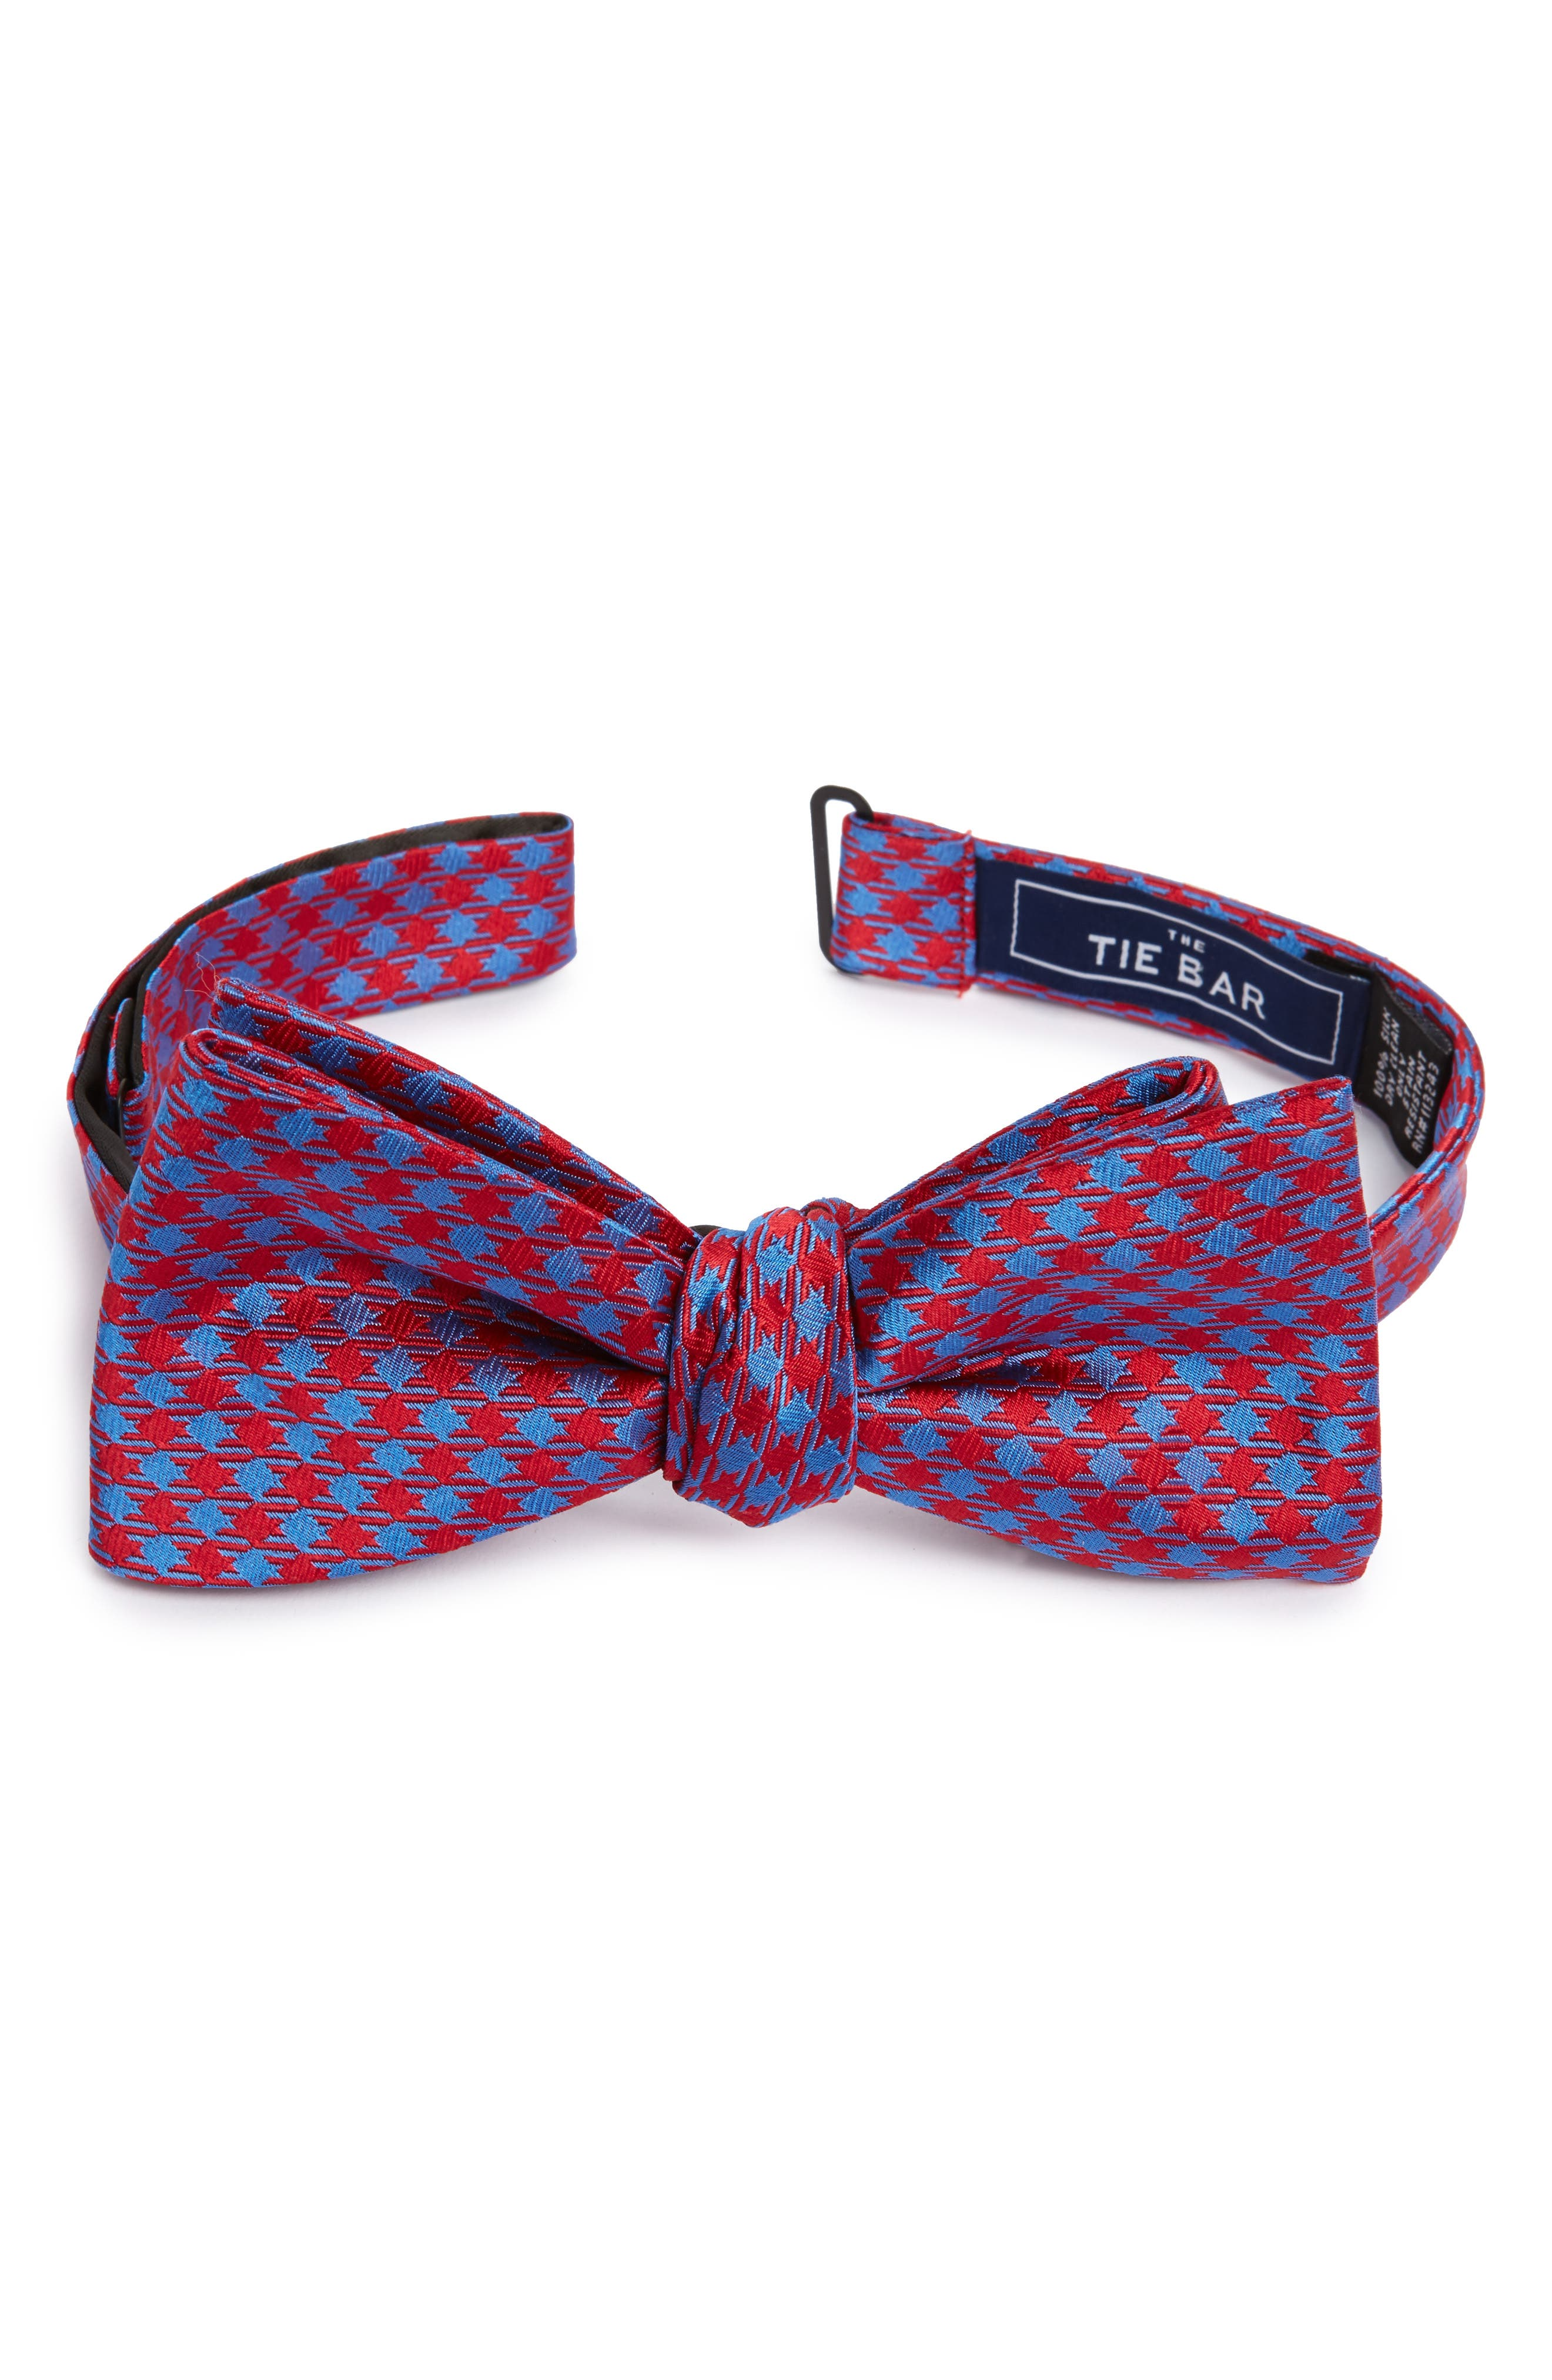 The Tie Bar Commix Check Silk Bow Tie